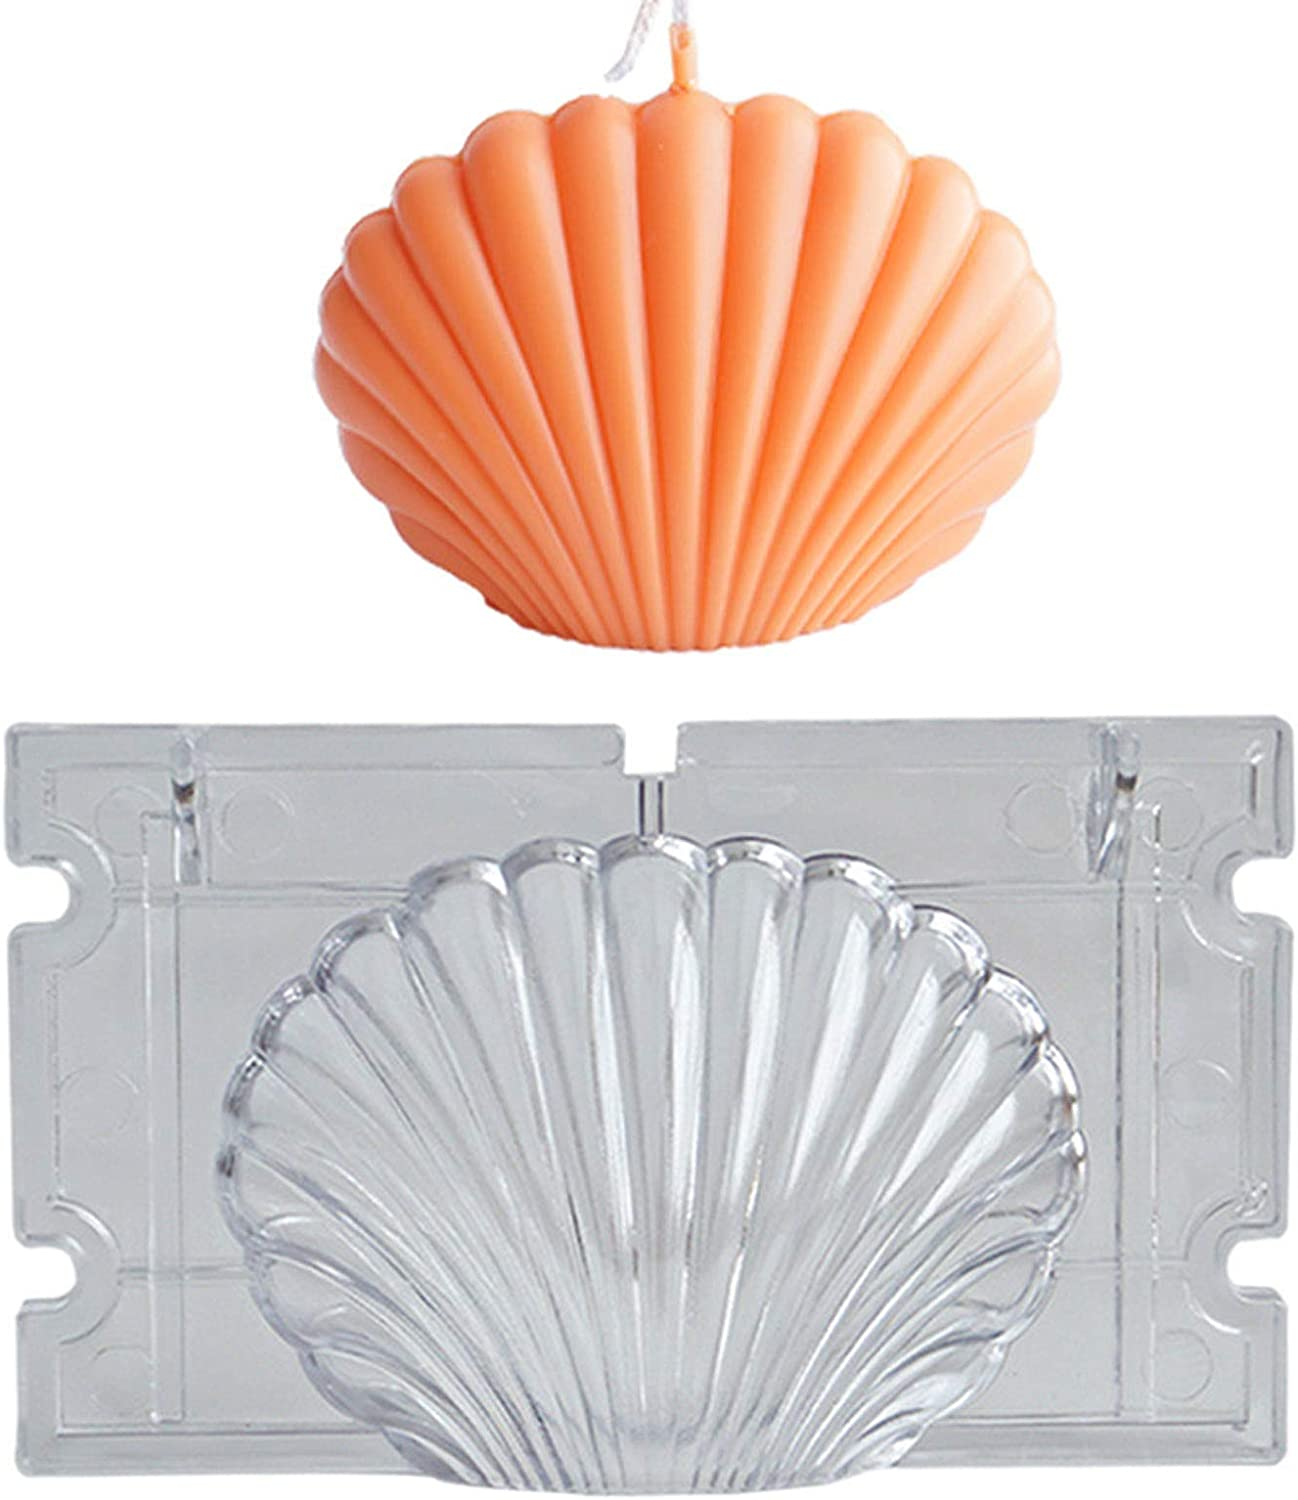 Scented Candle Mold Seashell Scallop Shell Candle Mold Handmade Soap Mould DIY